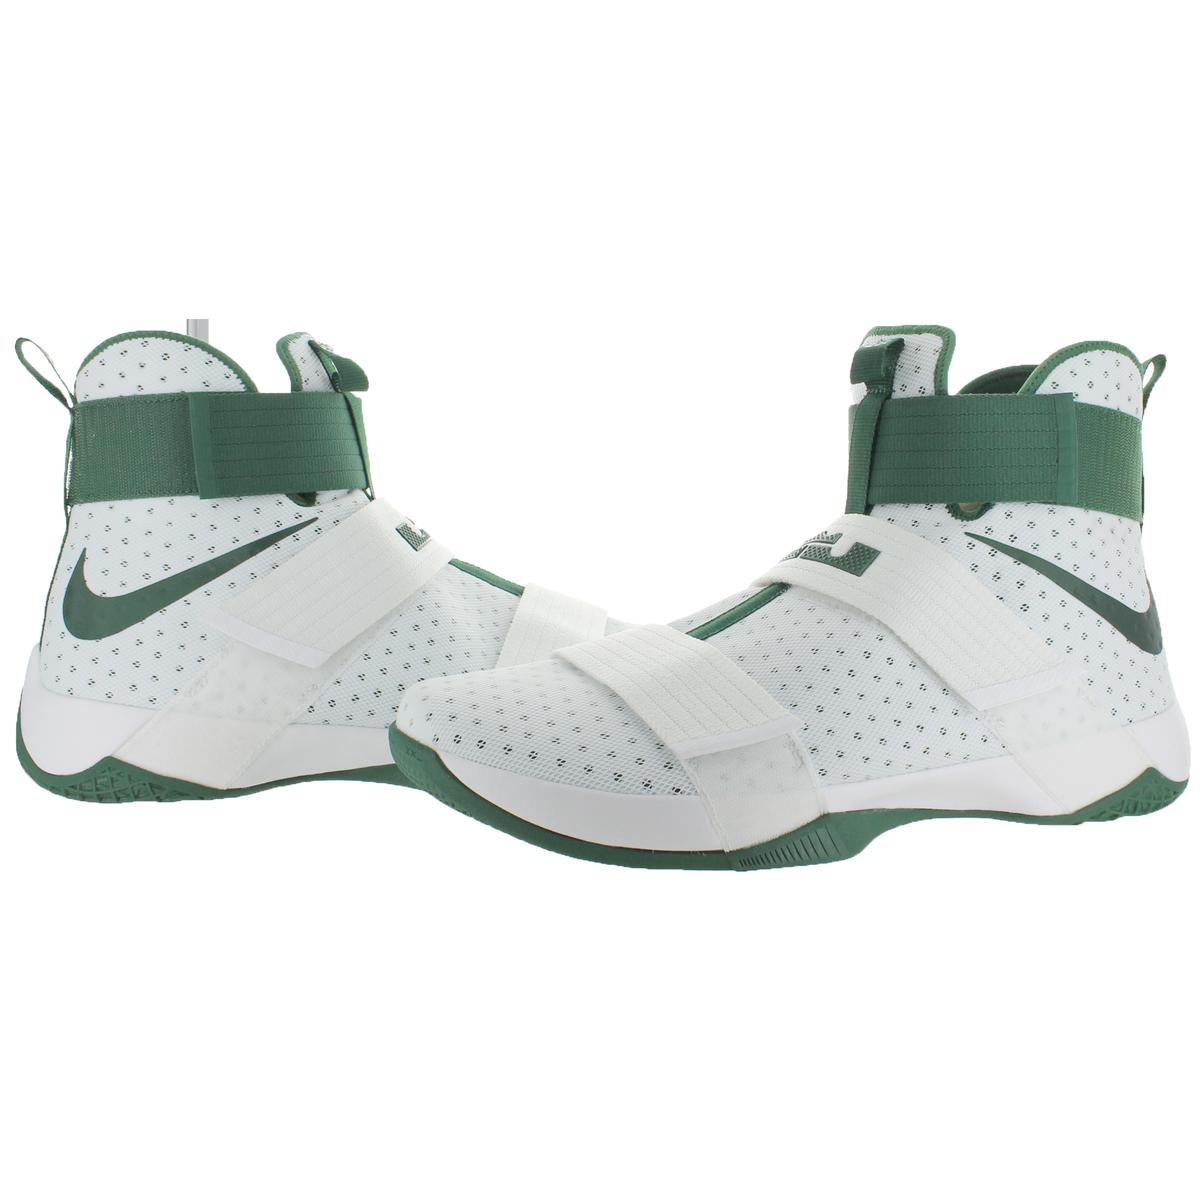 48cfe672fd34f new style lebron soldier 10 mens cheap parts 79dbd 3bfd3